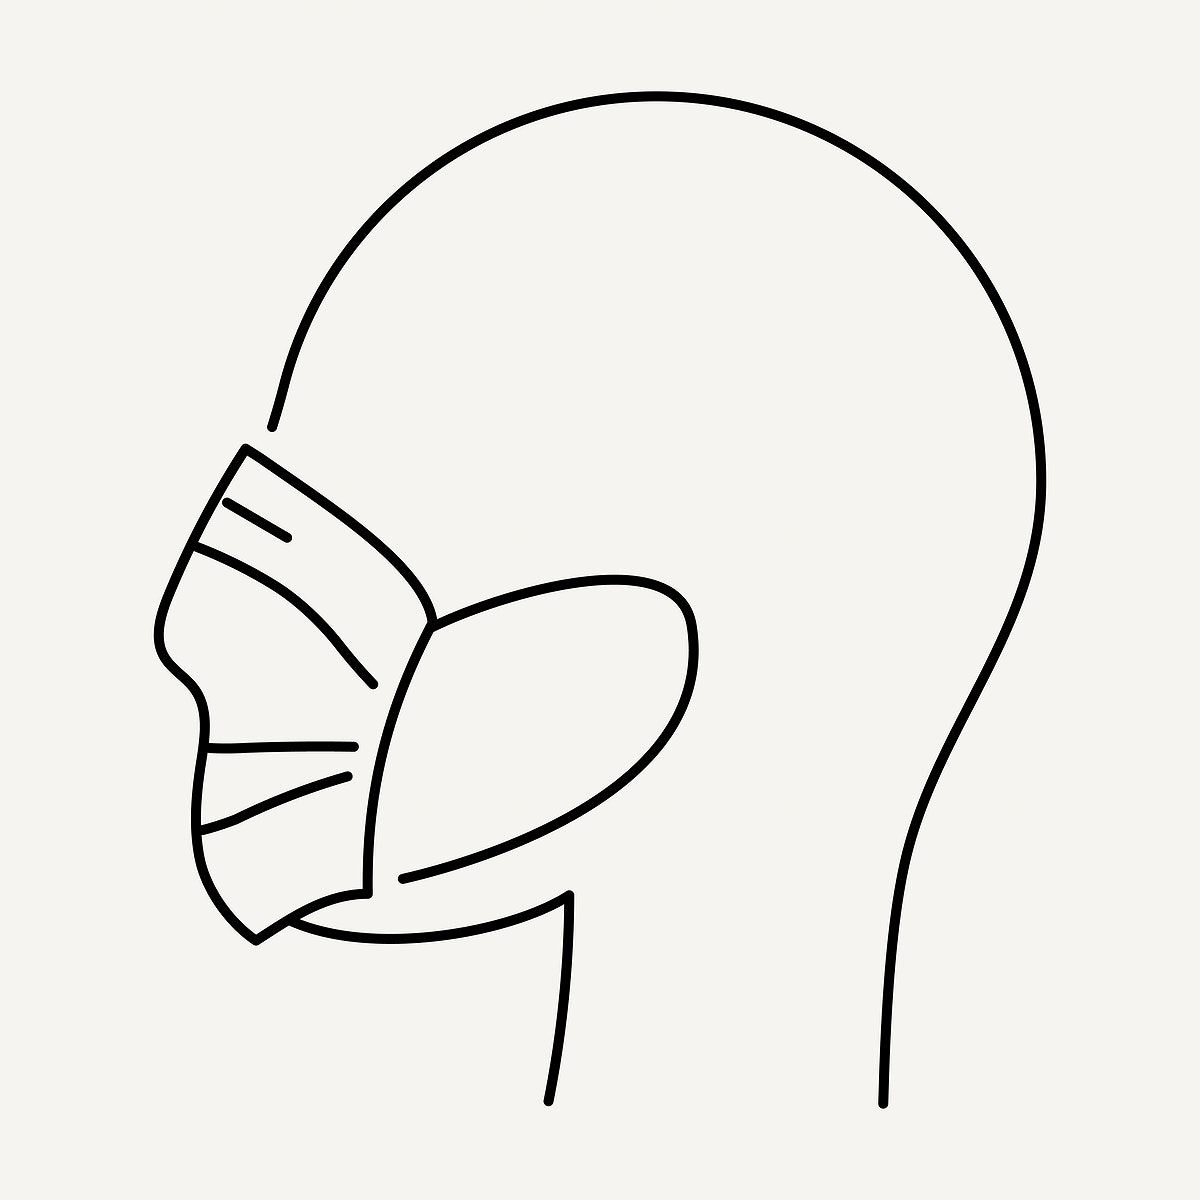 Line drawing character with wearing face mask from COVID-19 symptoms element vector